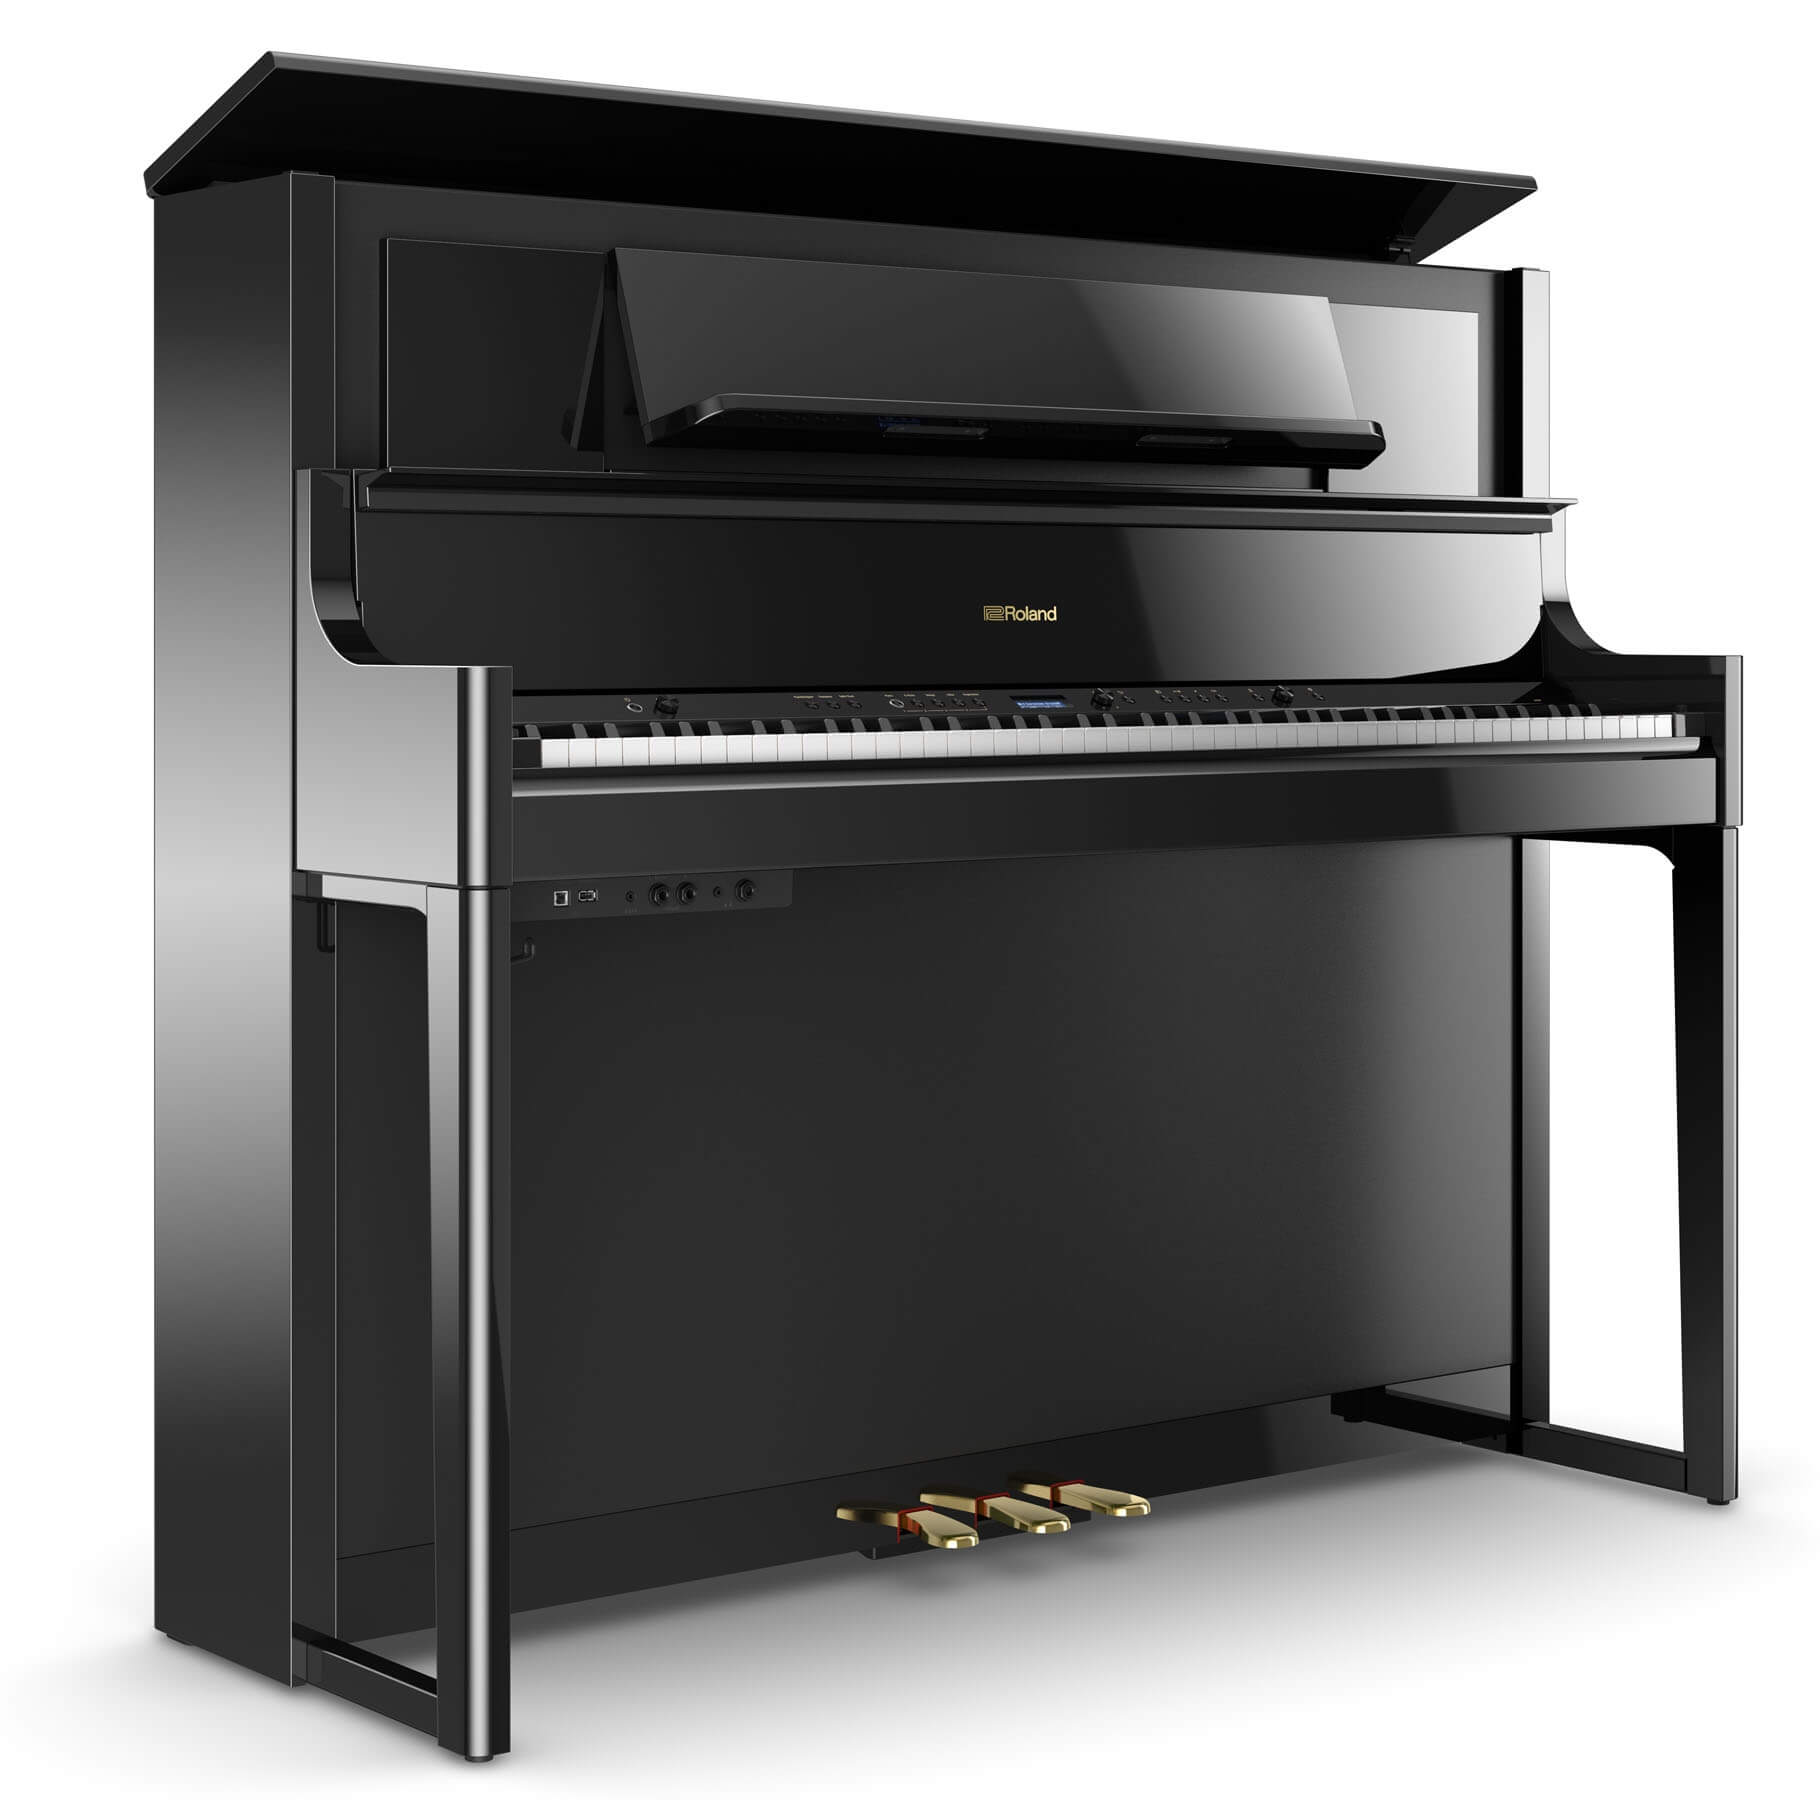 roland introduces lx700 digital piano series piano every day app. Black Bedroom Furniture Sets. Home Design Ideas